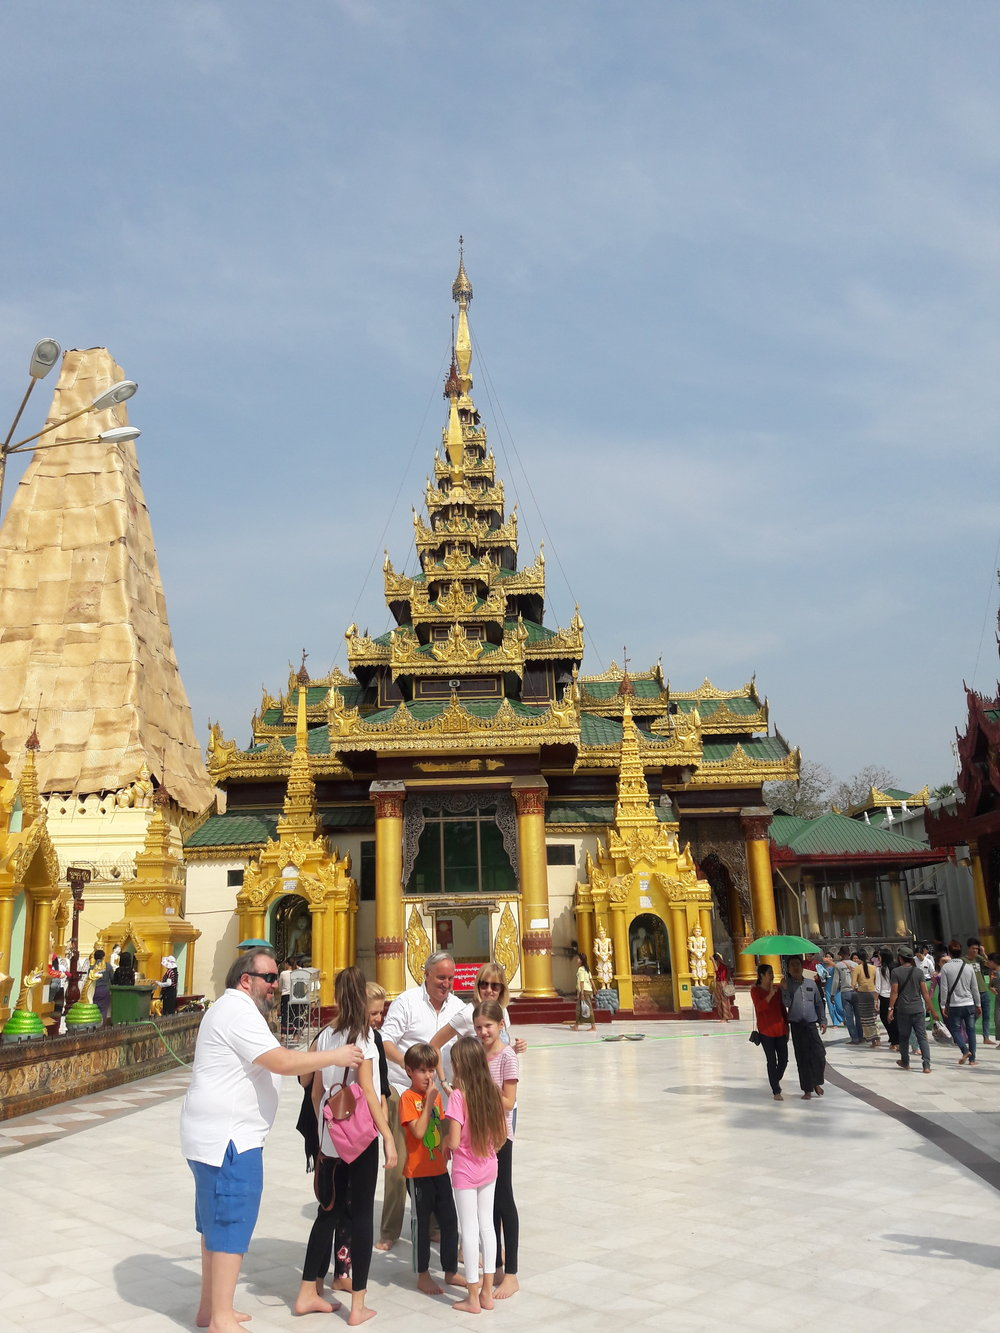 Outside view of the Shwedagon Pagoda in Burma.